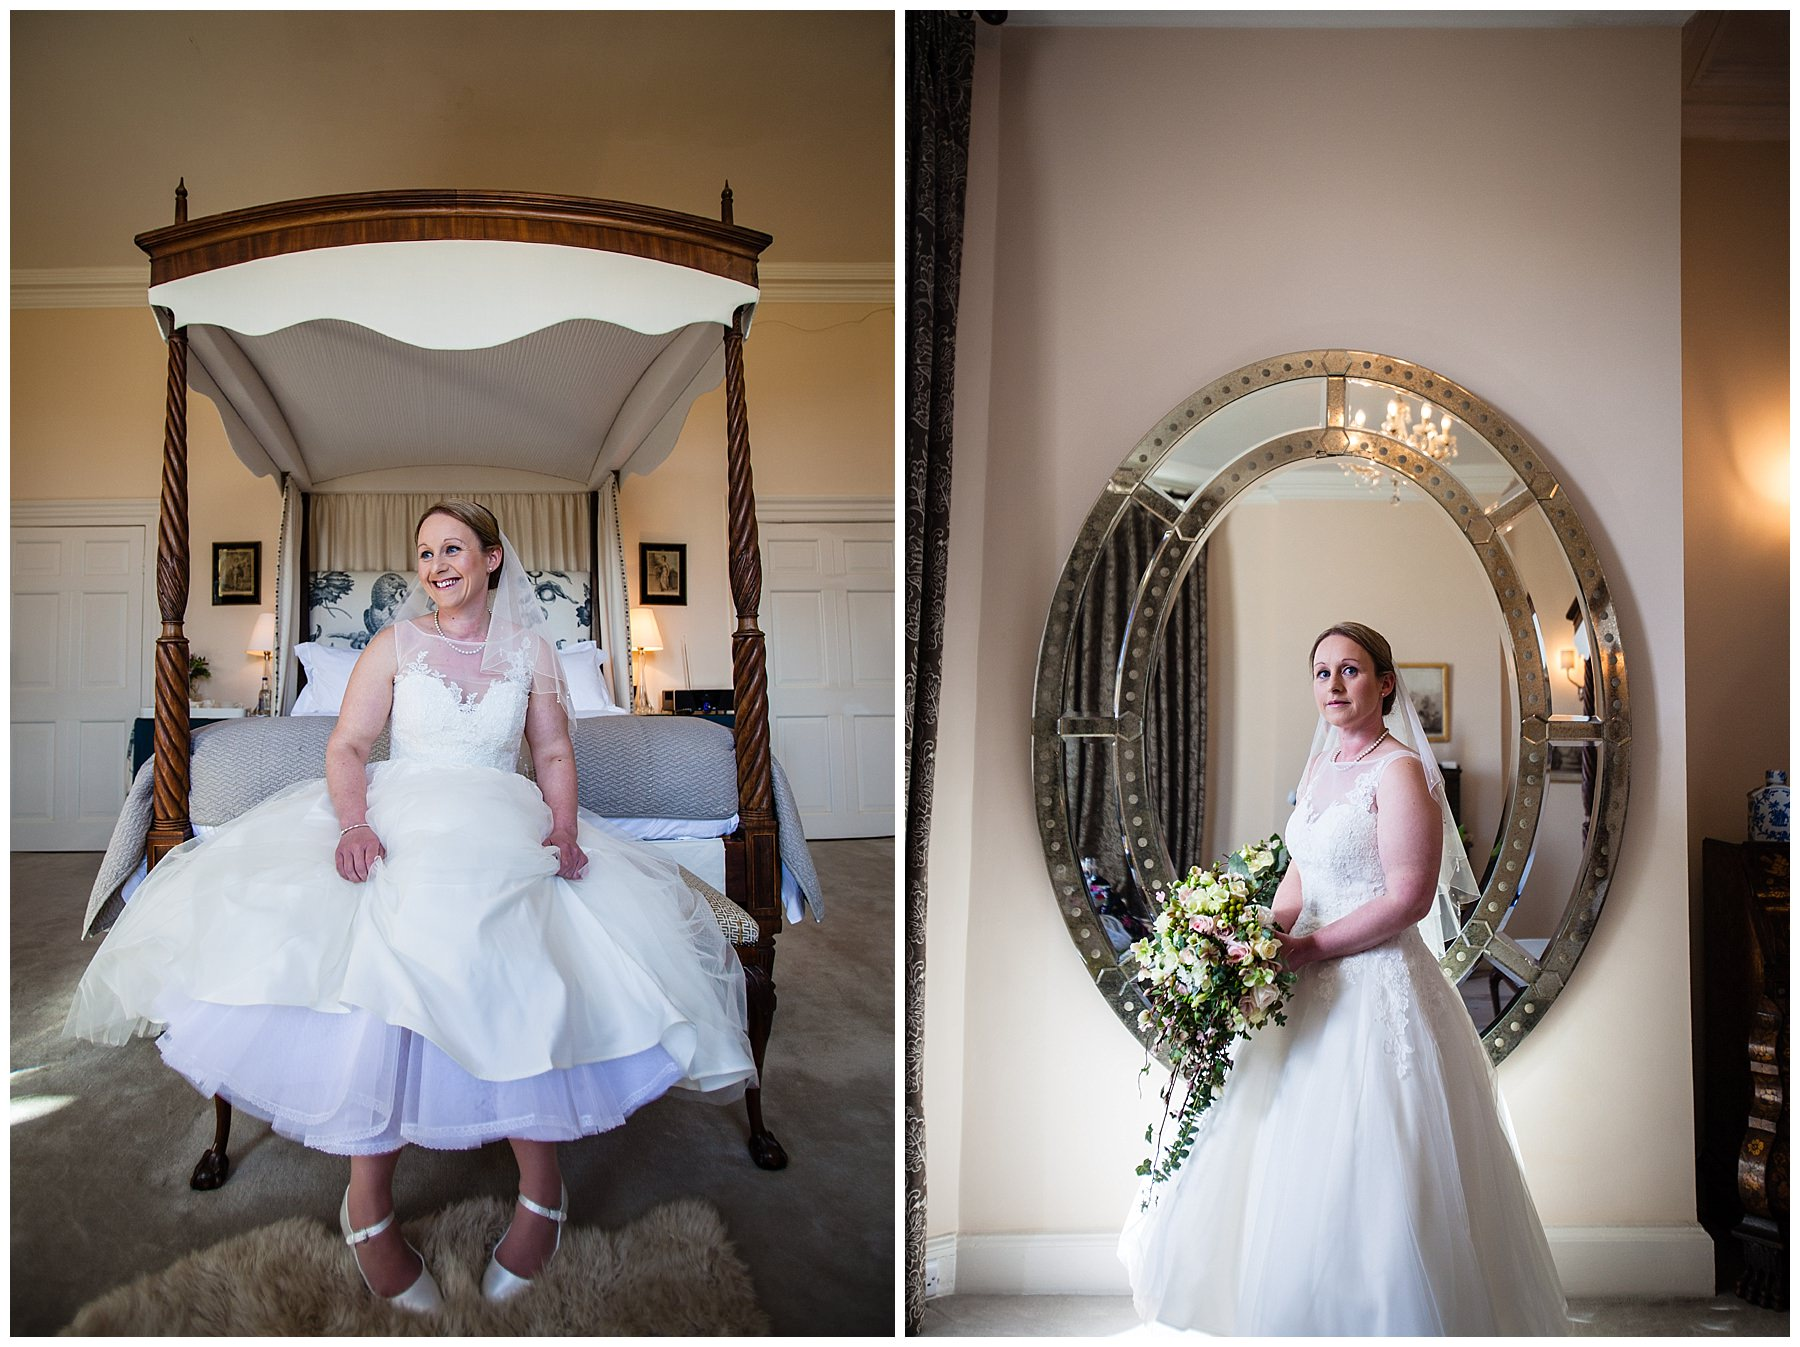 very excited bride sat on the end of the bed in the bridal suit and also infront of the mirror at iscoyd park wedding - shropshire phpotographer